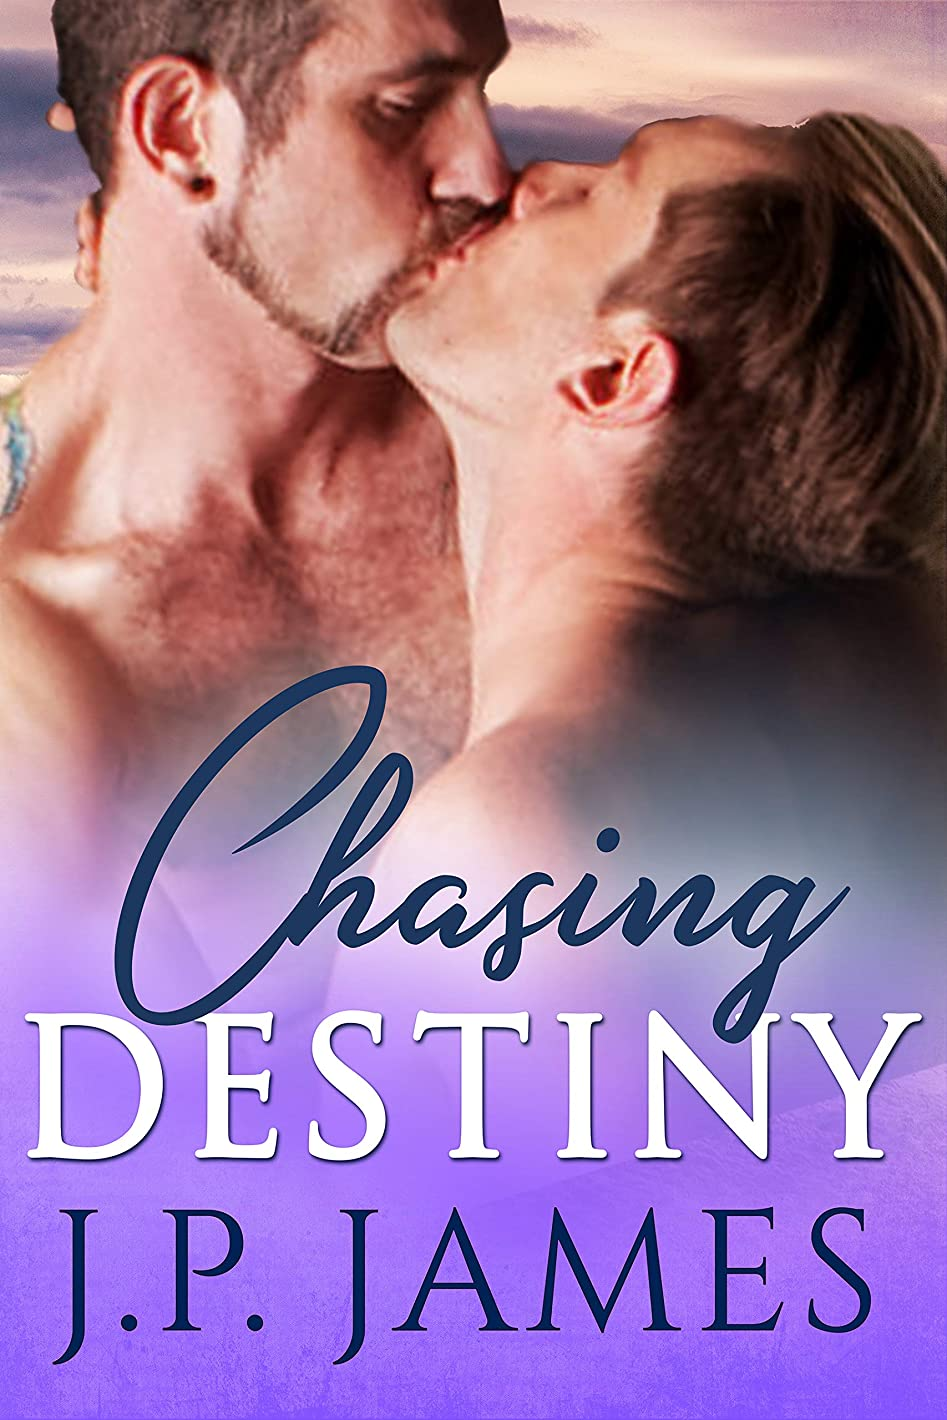 にじみ出る虐待理解するChasing Destiny: A Male/Male Coming Out of the Closet Romance (The Chasing Series Book 2) (English Edition)